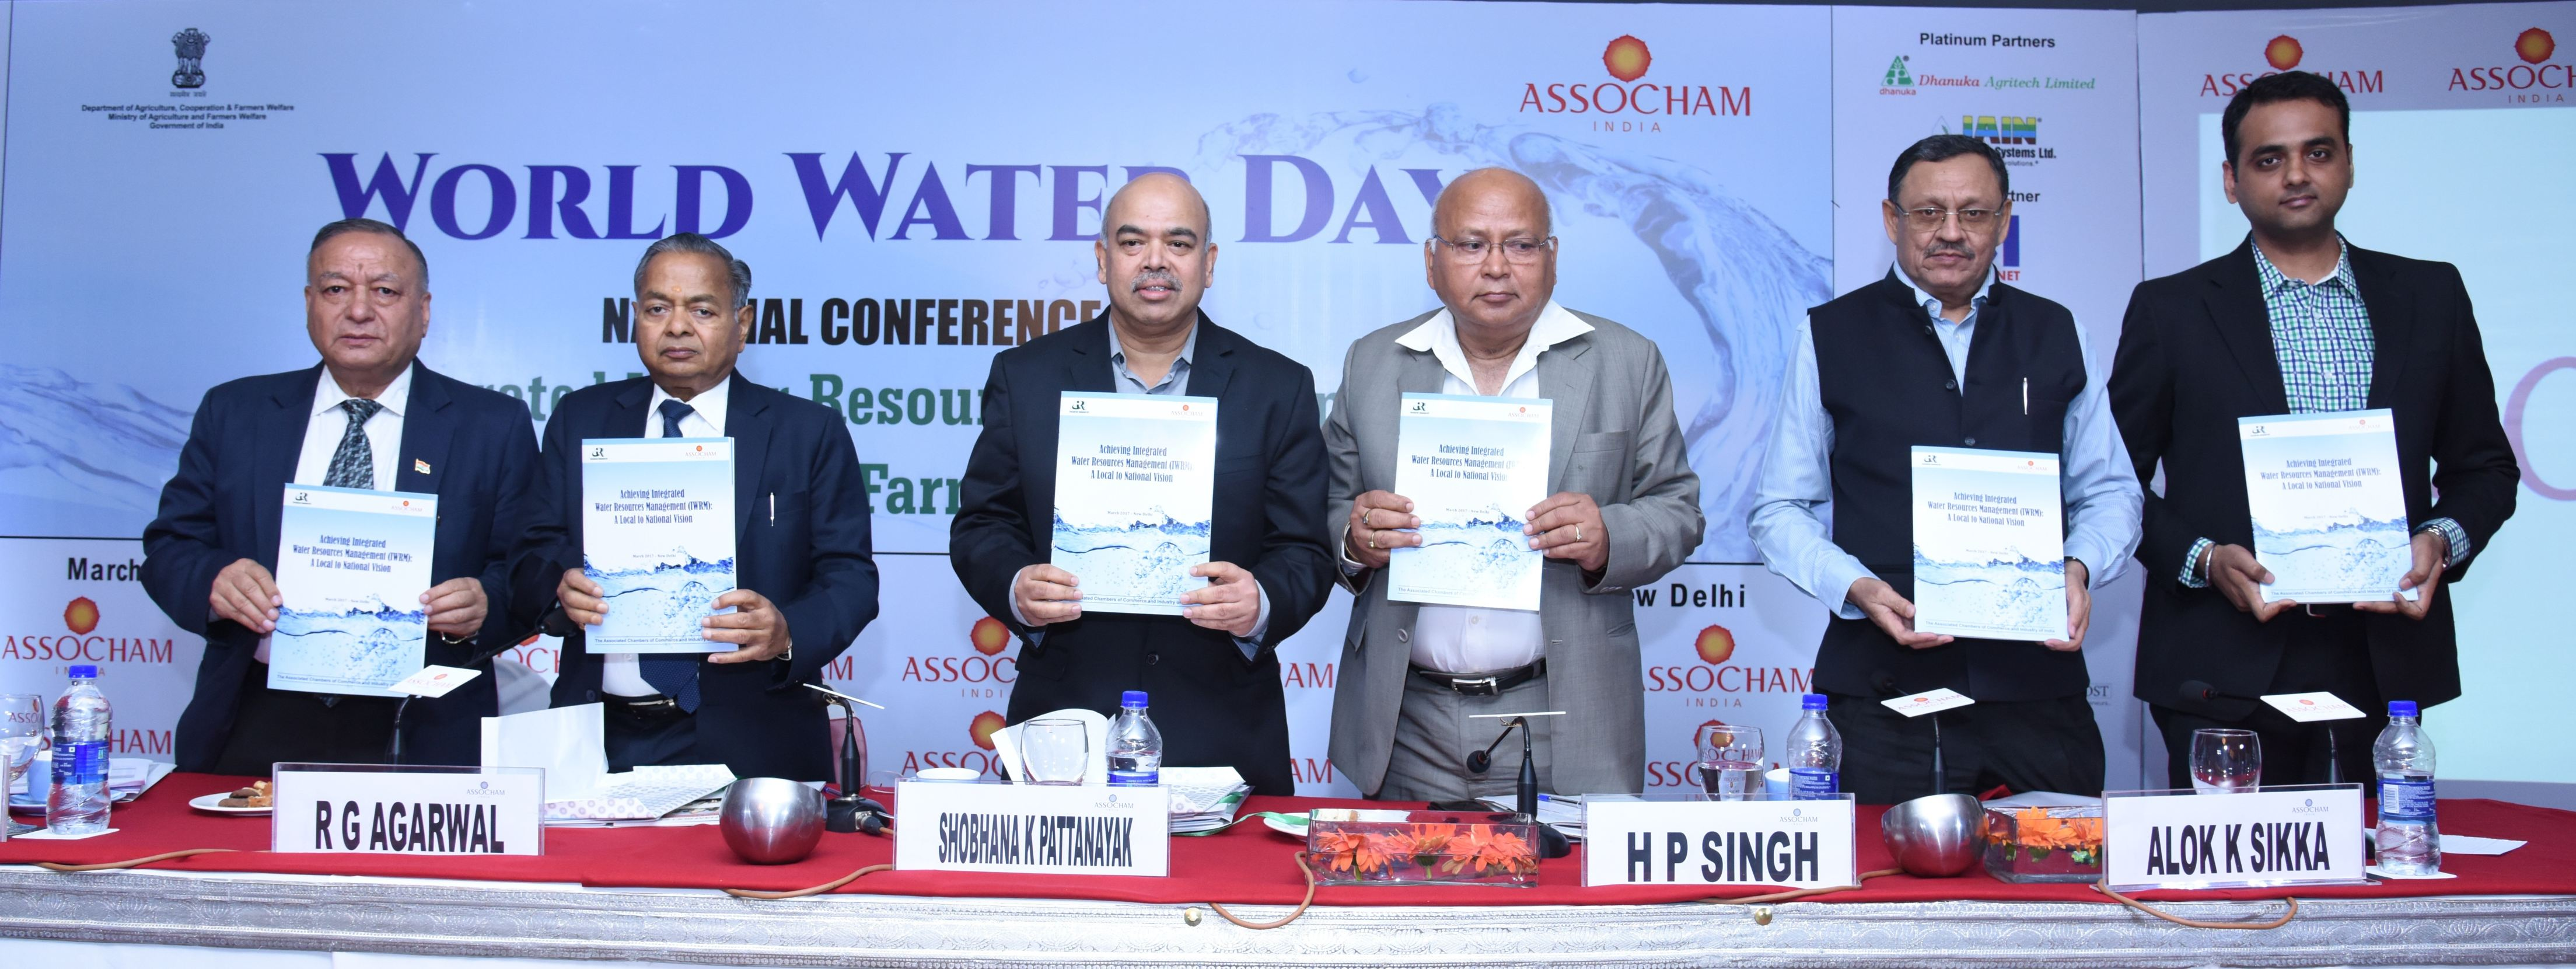 Conserving Water in India in the Dhanuka Way